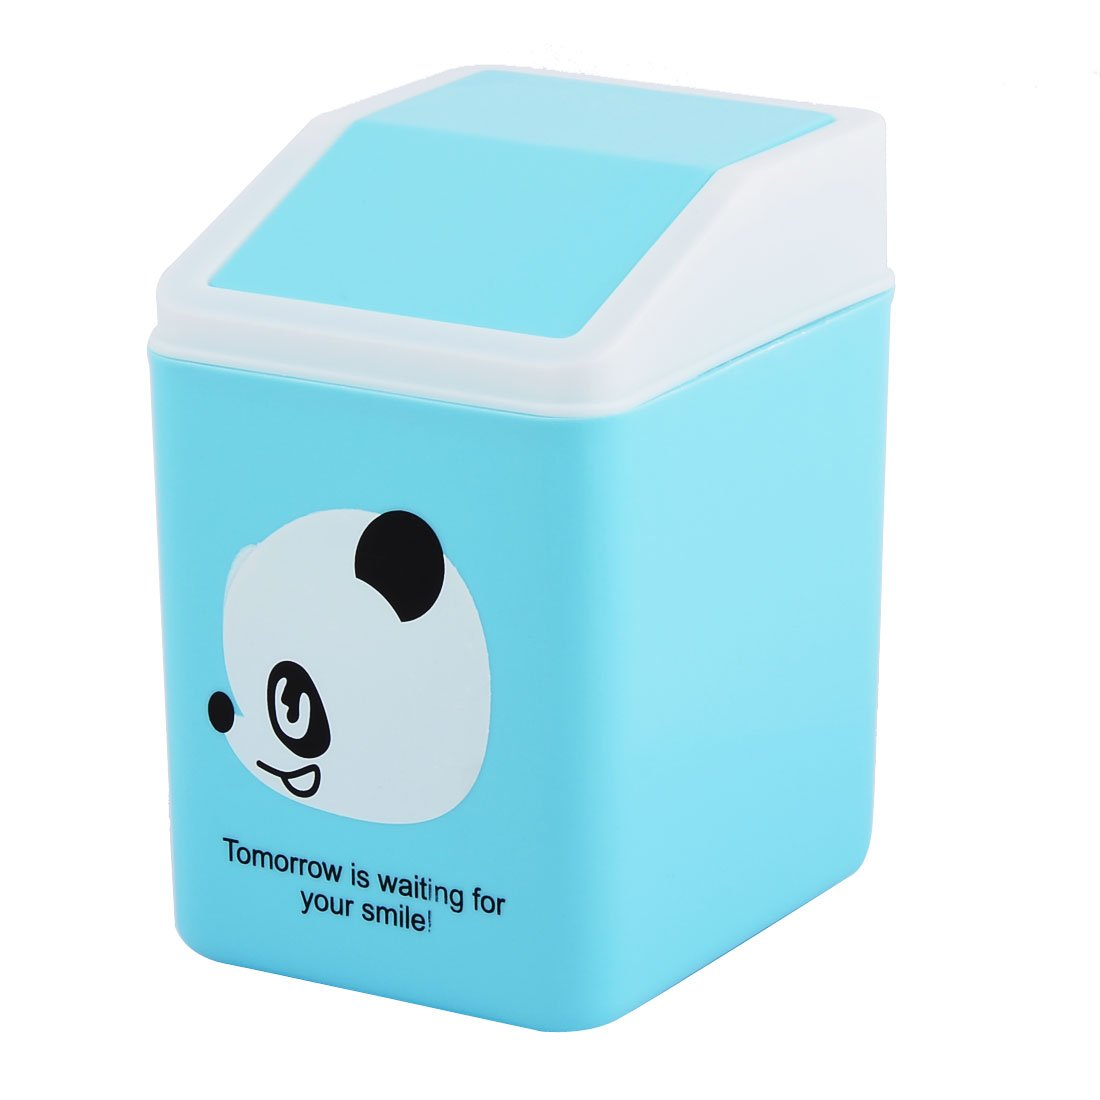 uxcell Panda Pattern Plastic Home Bedroom Seedcase Rubbish Waste Garbage Bin Can Blue SYNCFHK005397